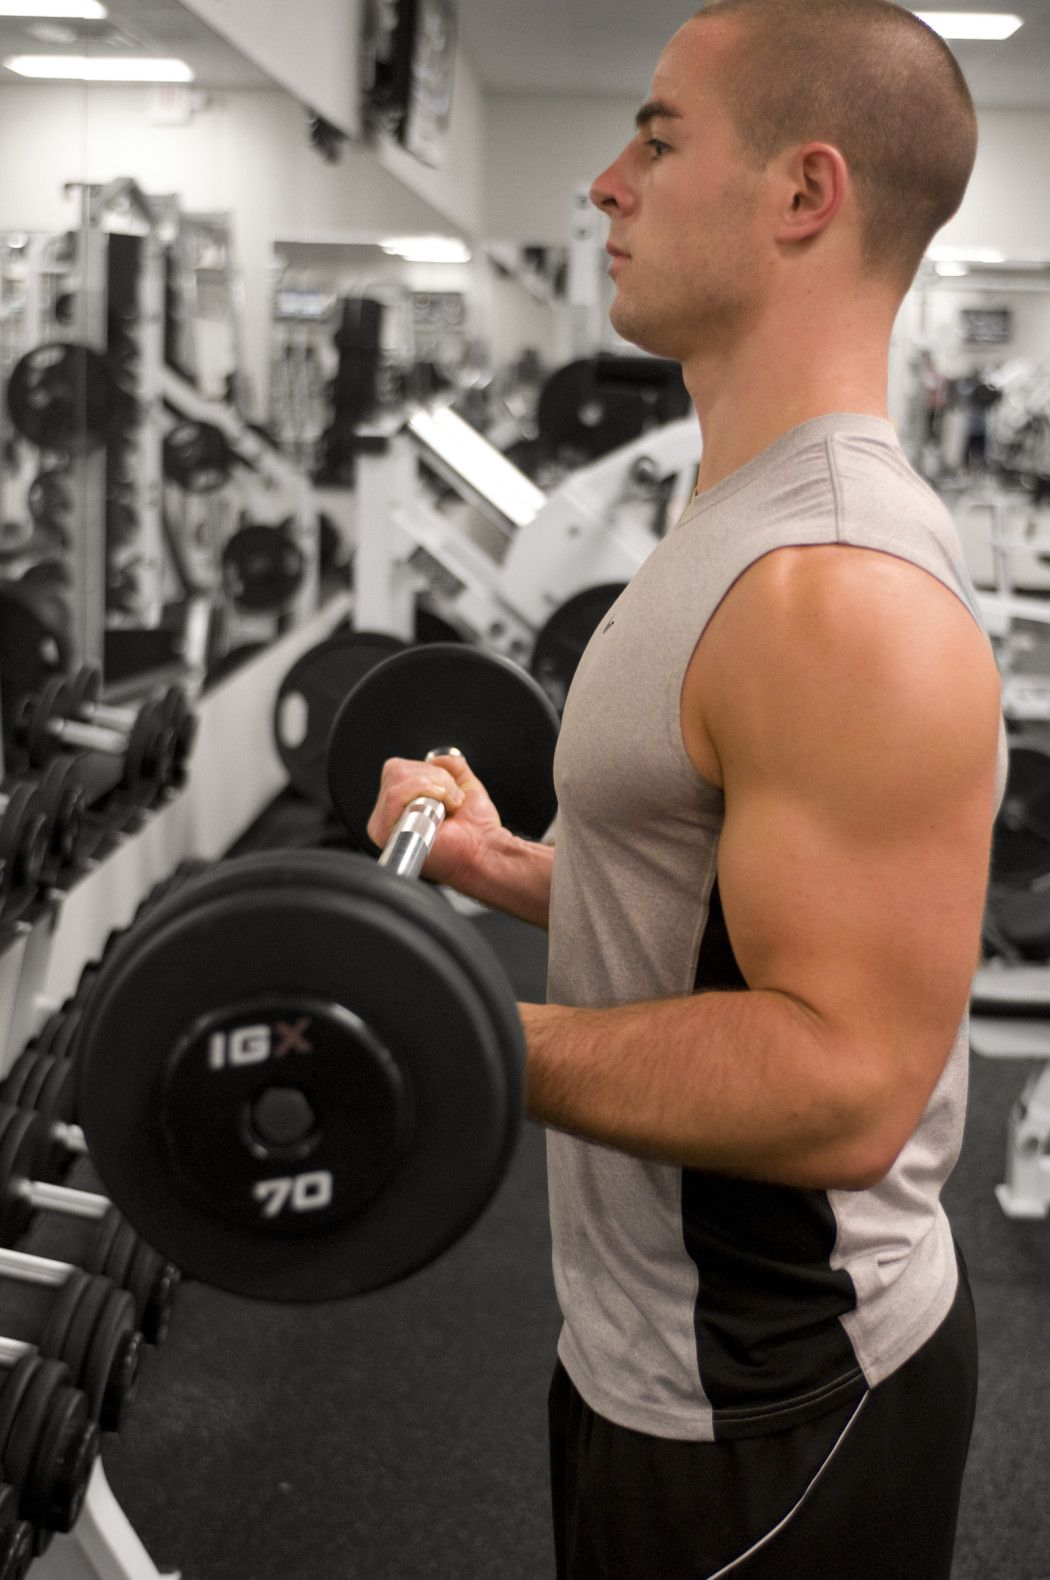 The Fundamental Lifts To Master Ruled Me Zinc For Men Best Workout Routine Fitness